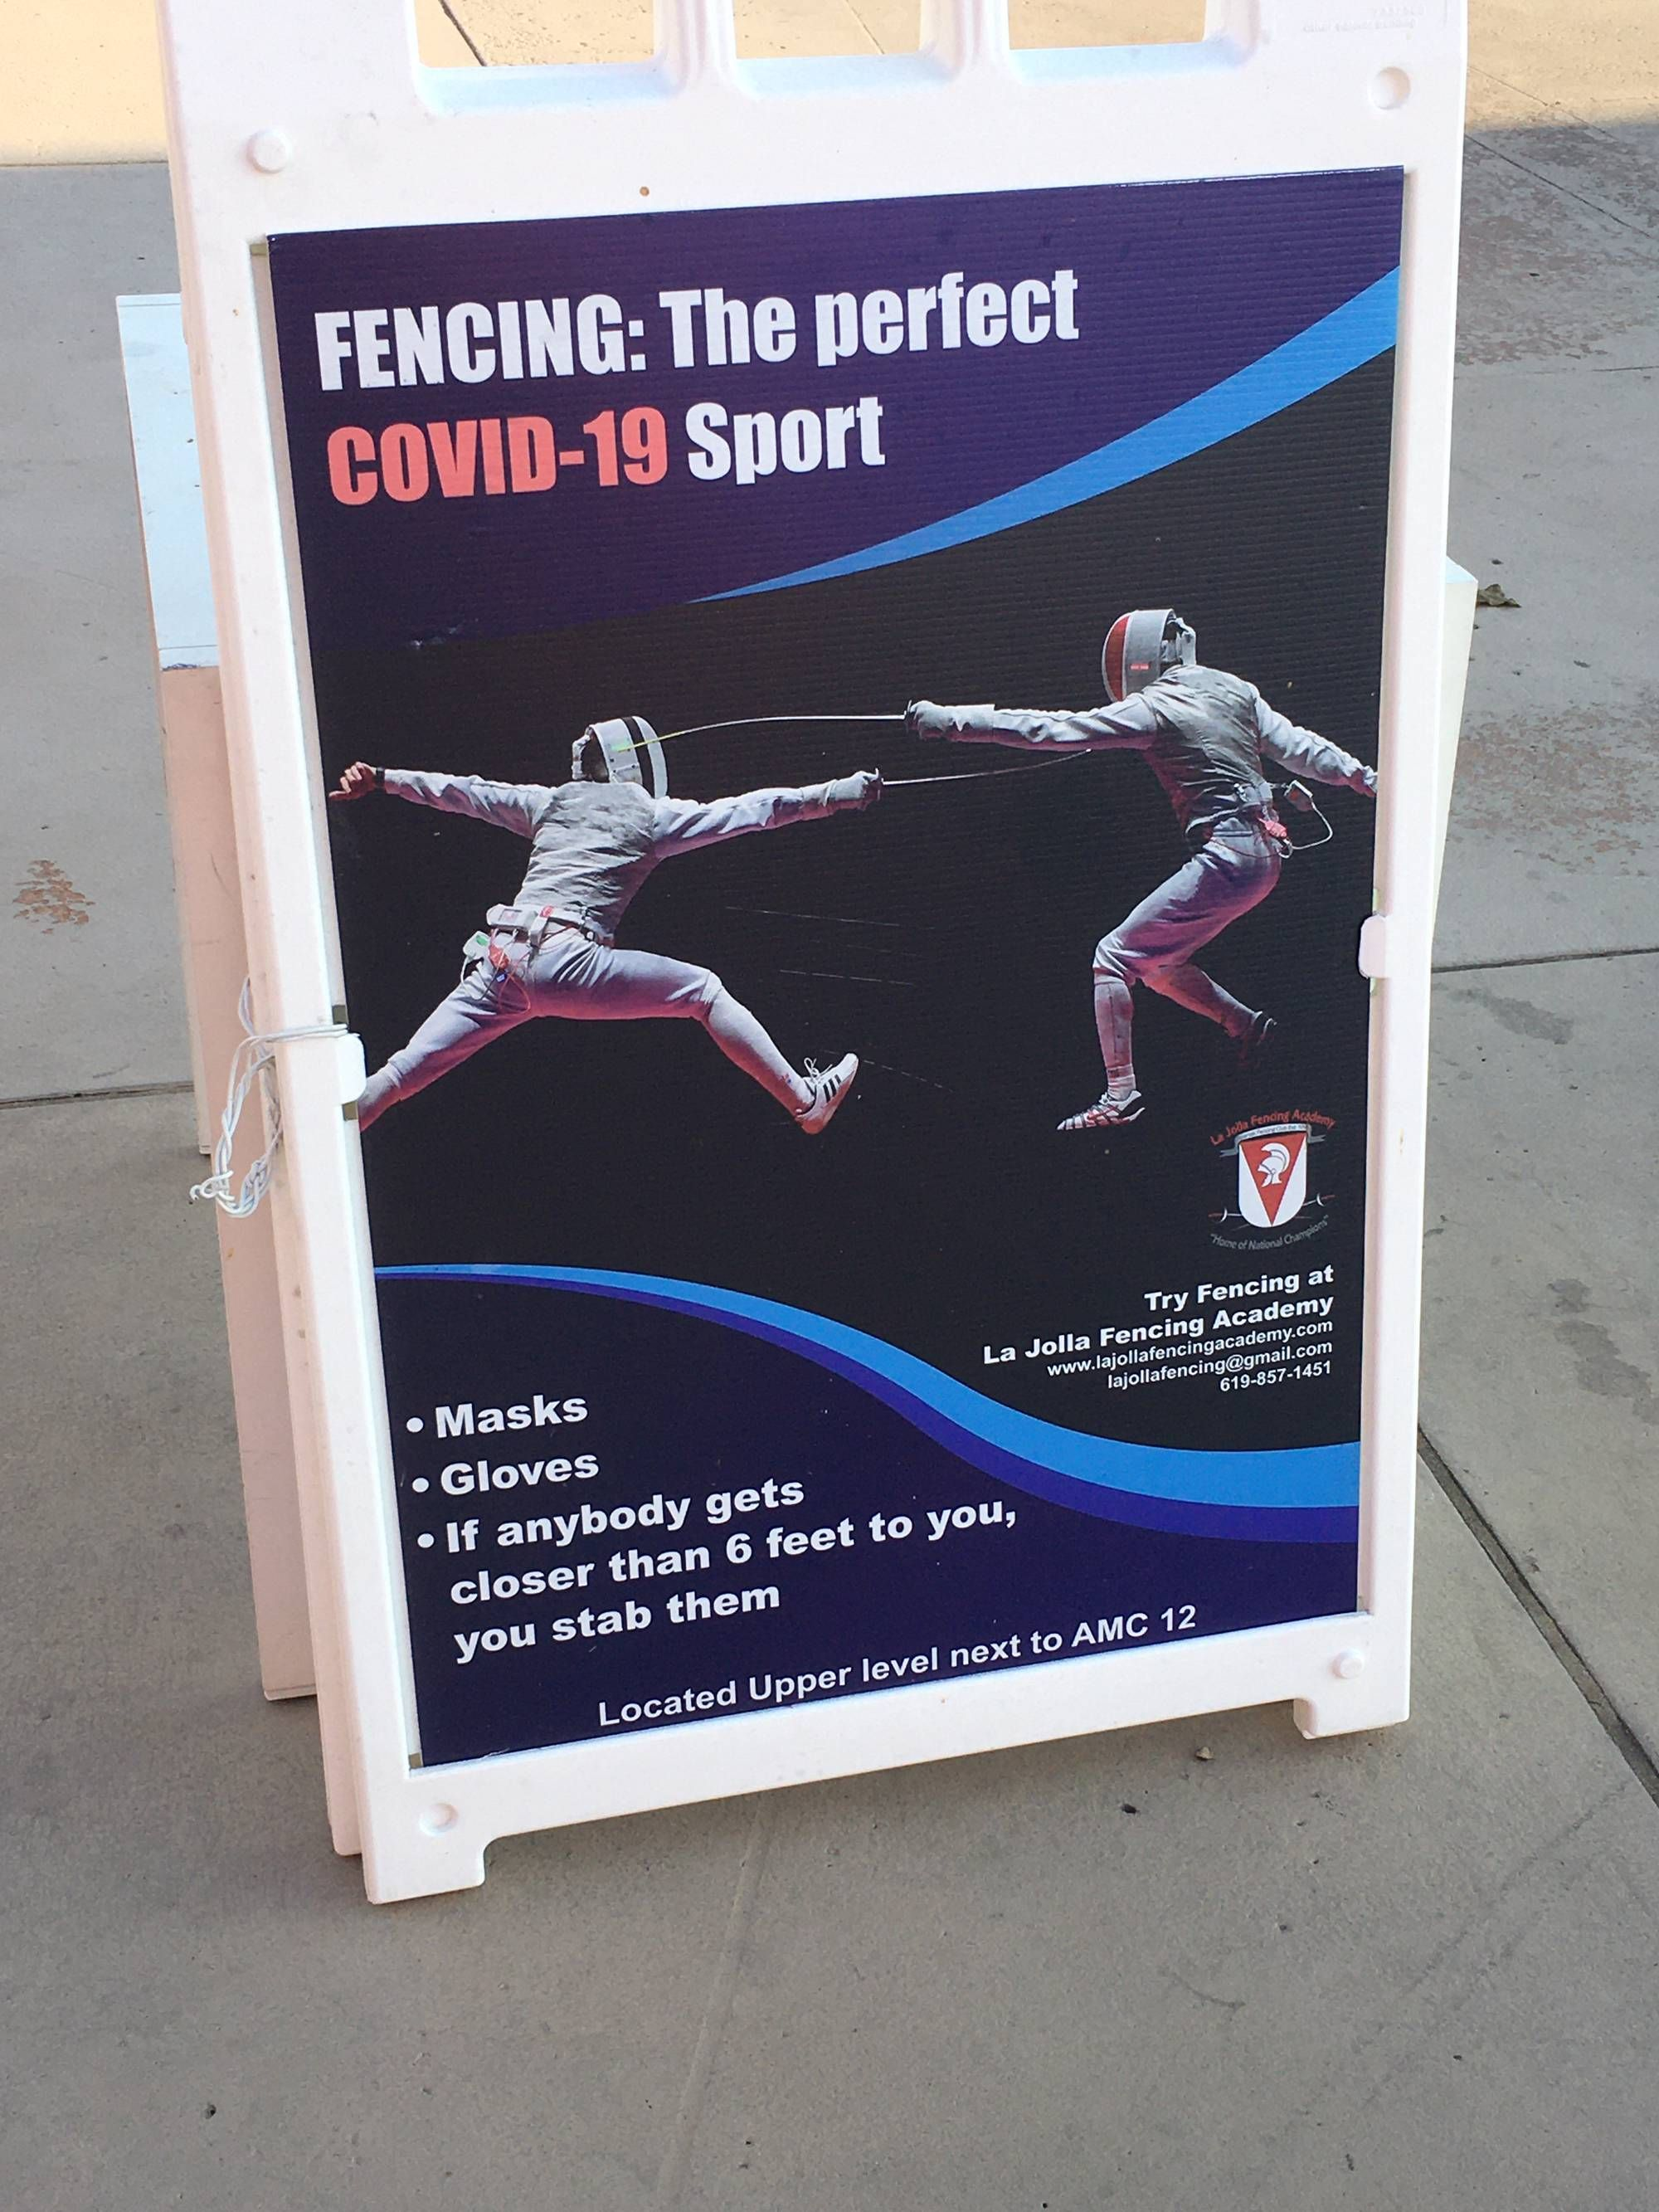 I'm convinced to learn fencing